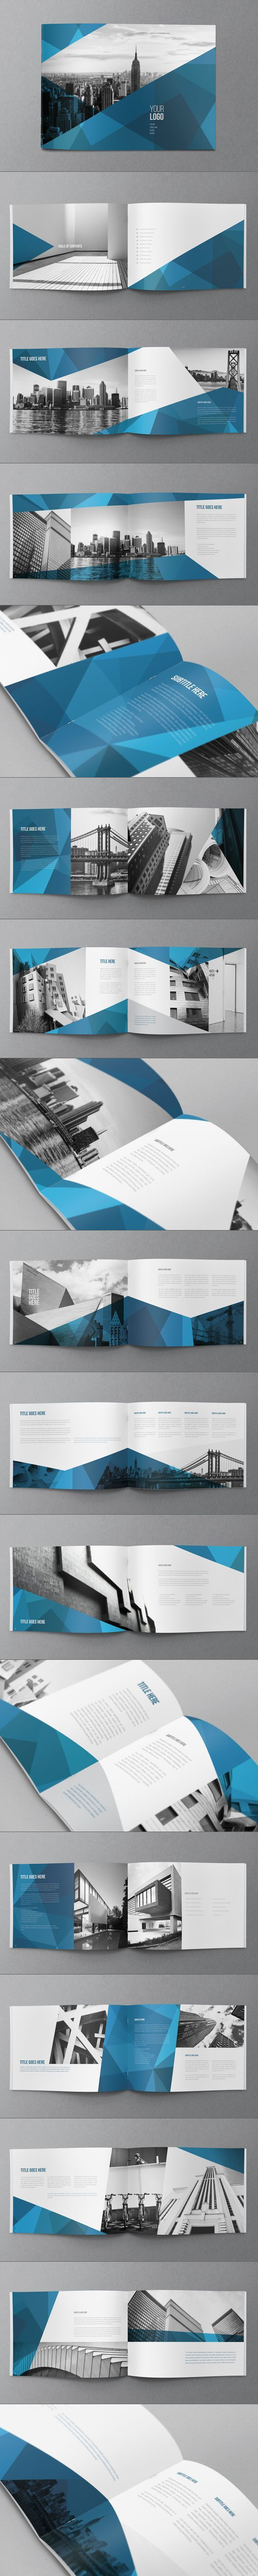 Abstract Architecture Brochure. Download here: https://graphicriver.net/item/abstract-architecture-brochure/7385718?ref=abradesign #design #brochure: